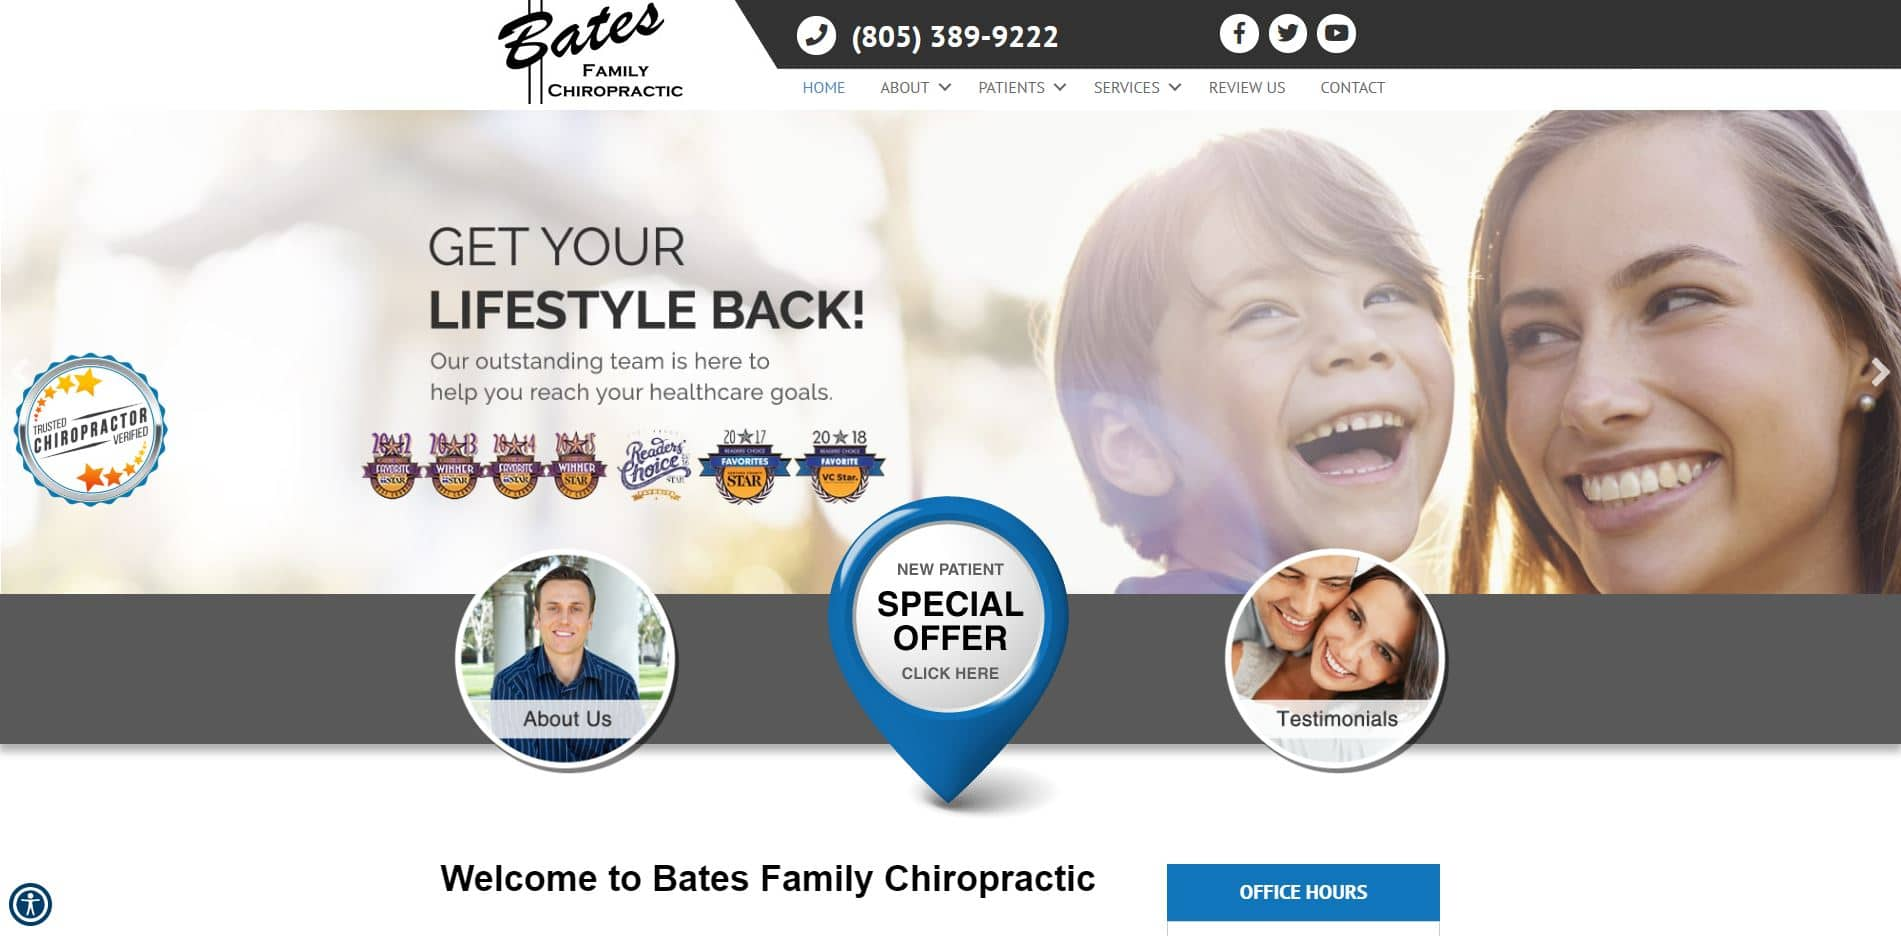 Chiropractor in Camarillo